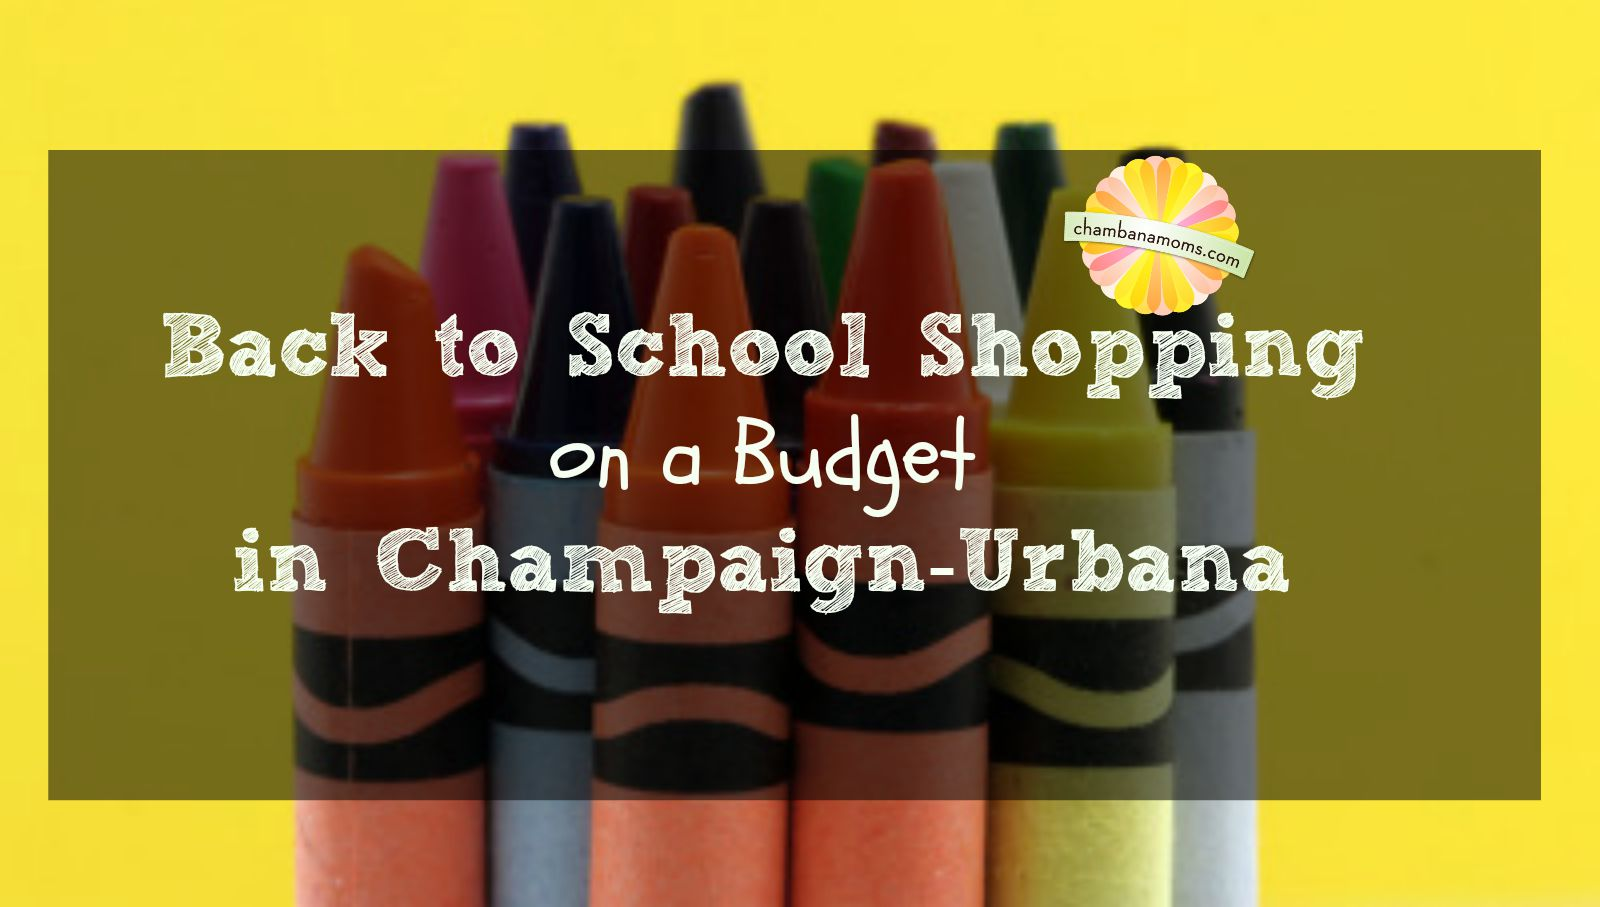 back to school shopping on a budget in champaign